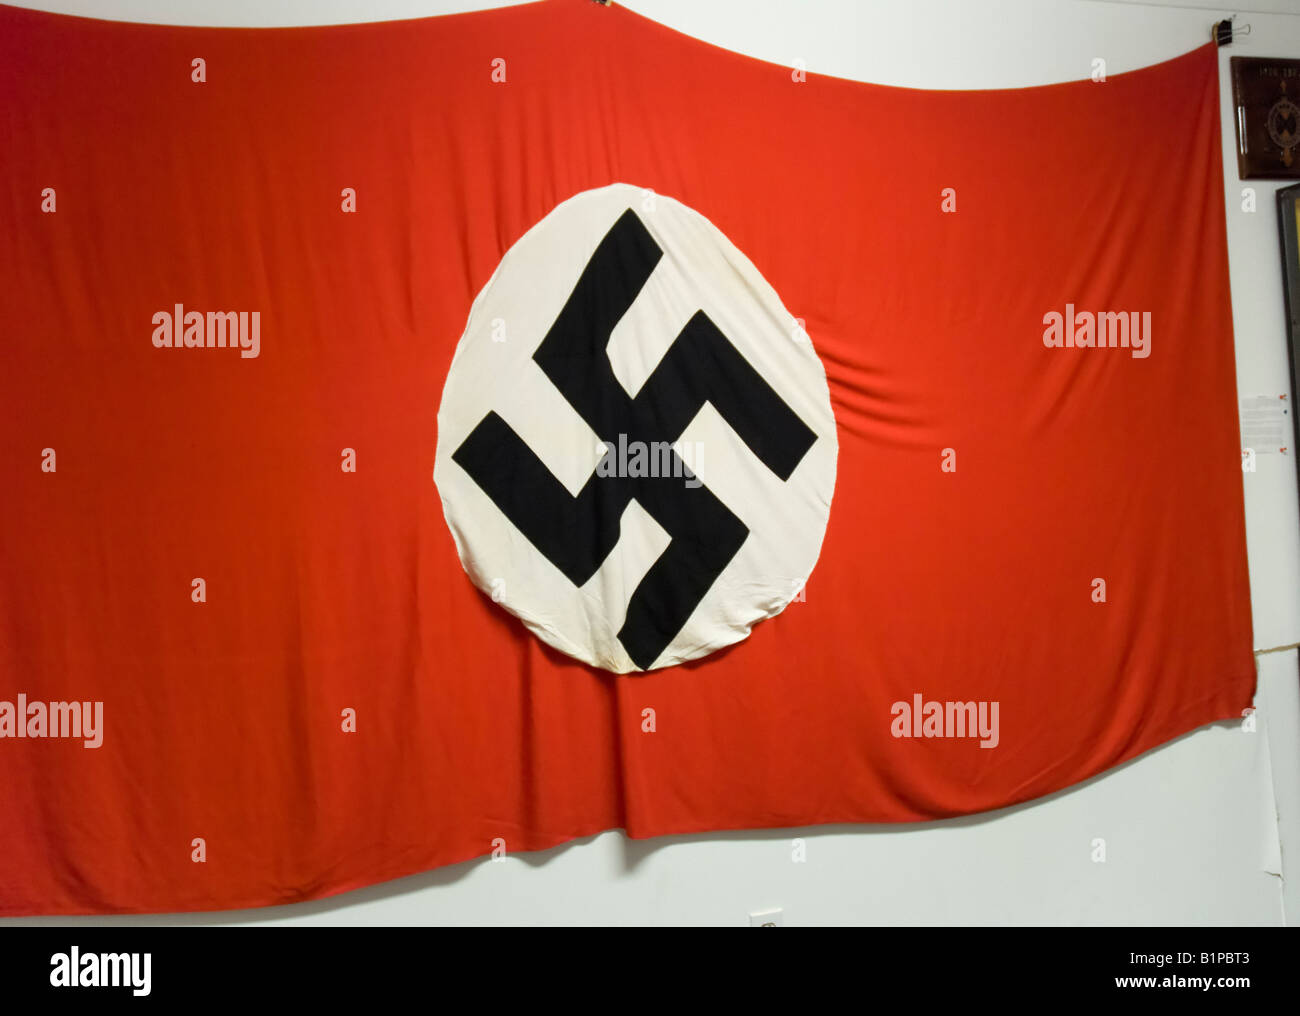 Nazi Germany flag from WW2 at museum, Carrabelle, Florida. - Stock Image